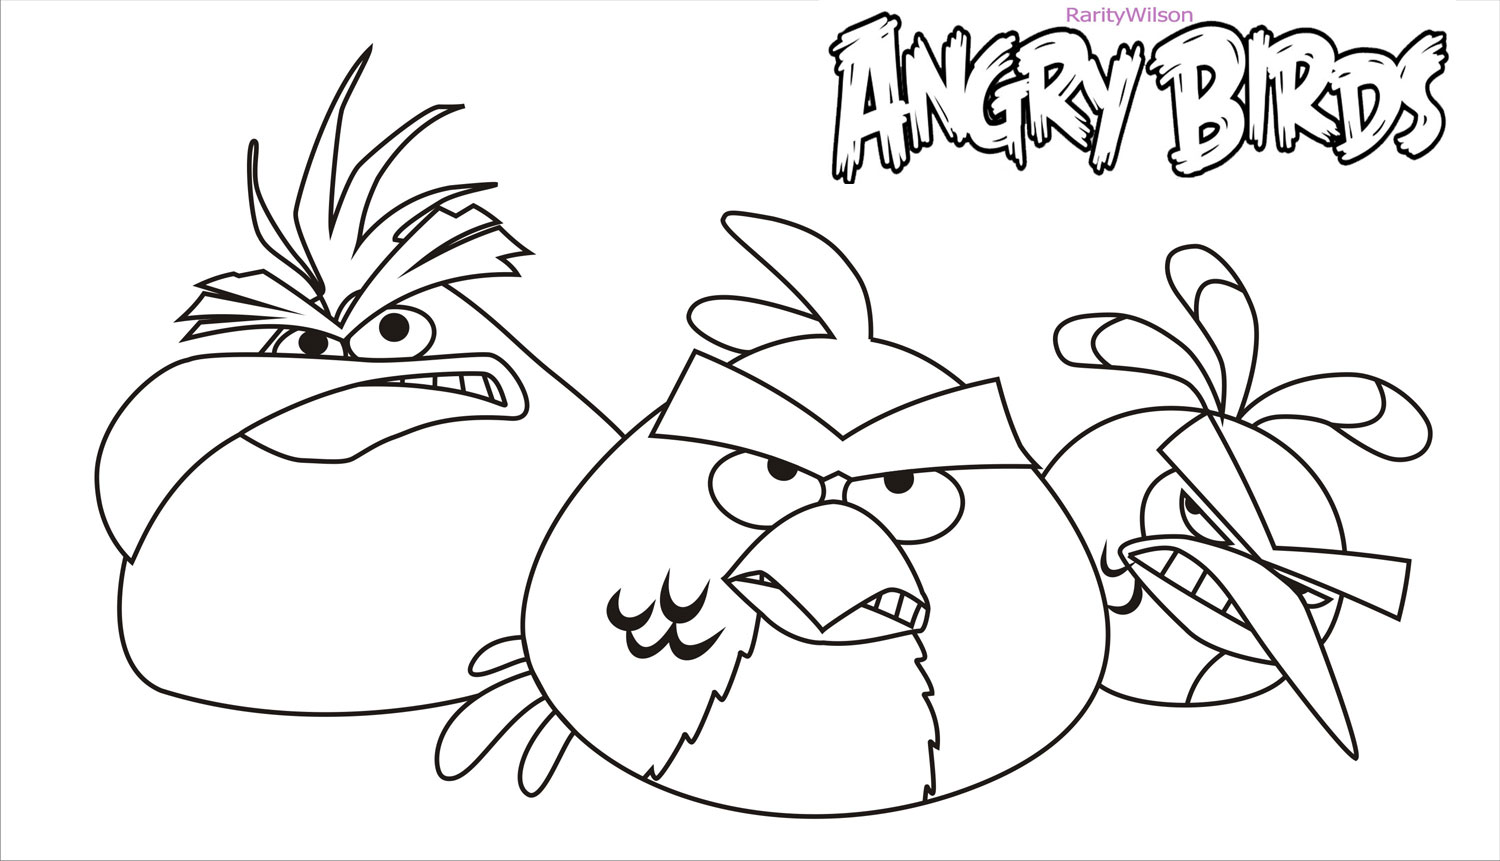 Gutsy image intended for angry birds printable color pages